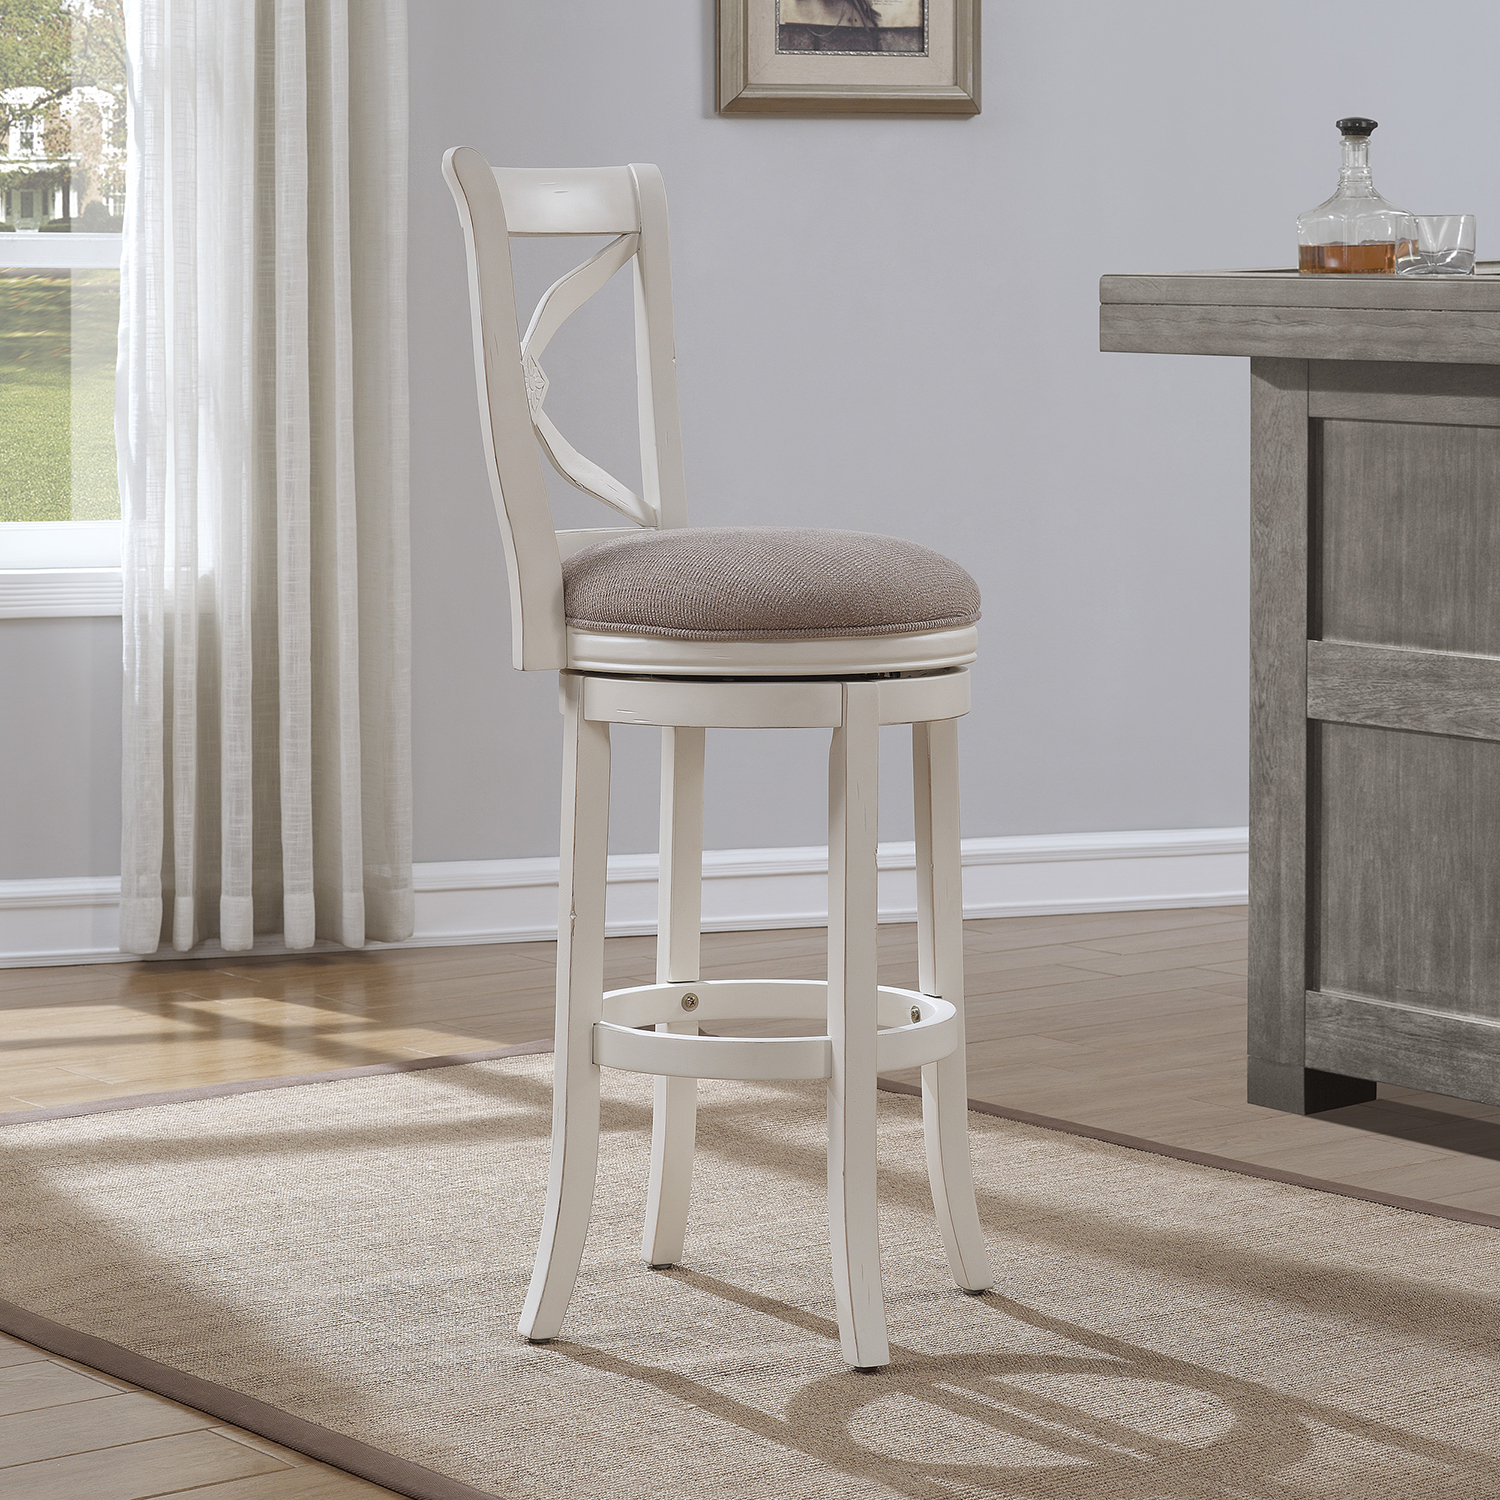 Accera Swivel Tall Bar Stool - Antique White, Light Brown Fabric - AW-B2-205-34FSU